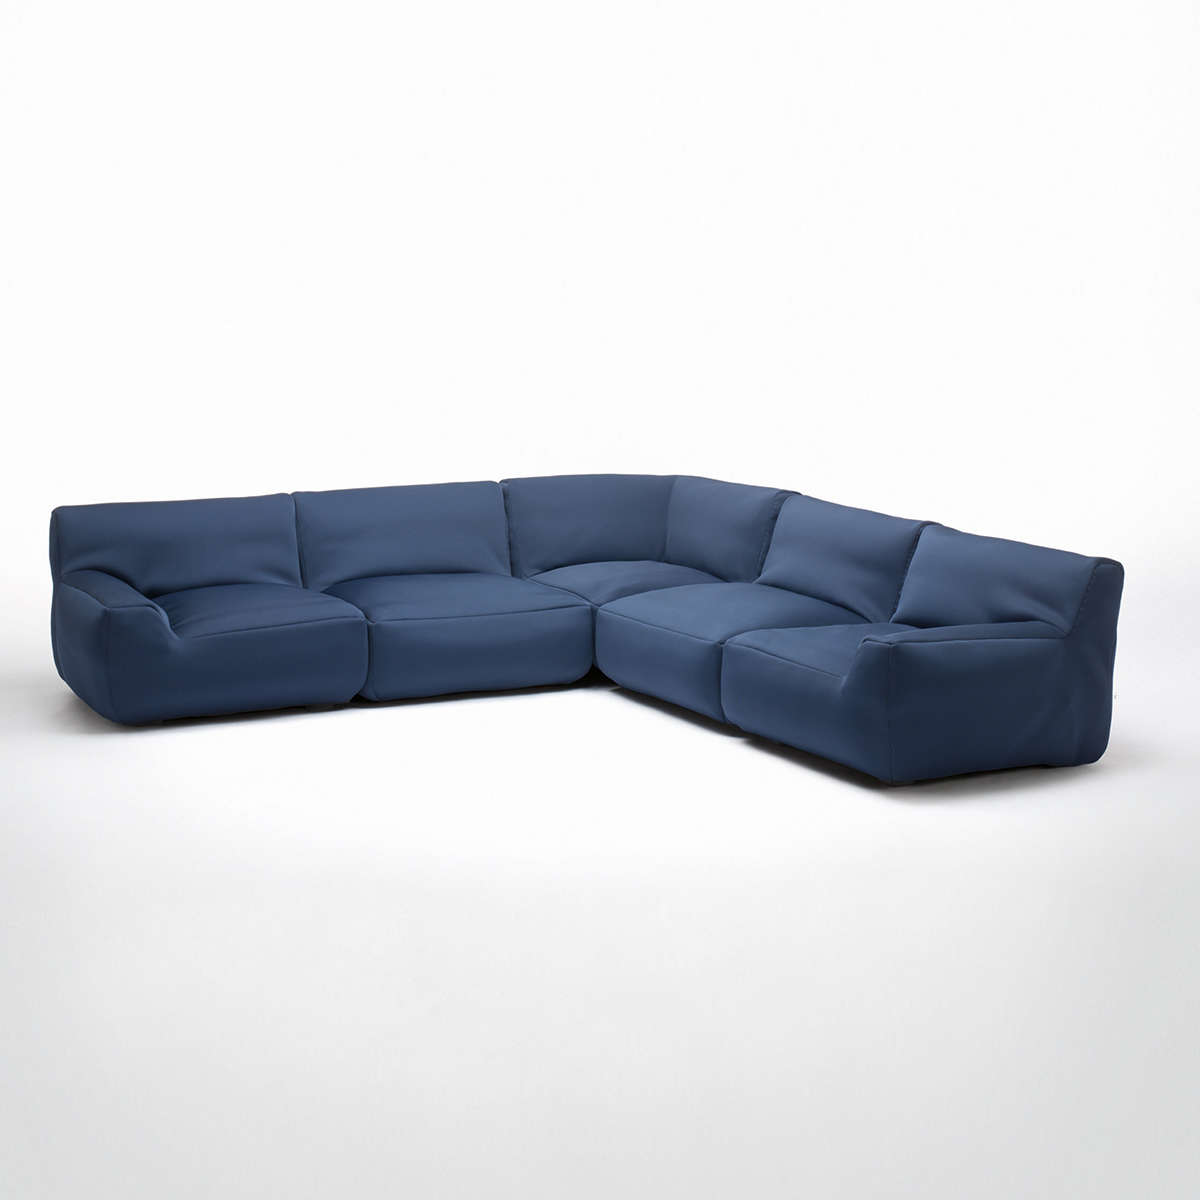 Welcome Sofa System